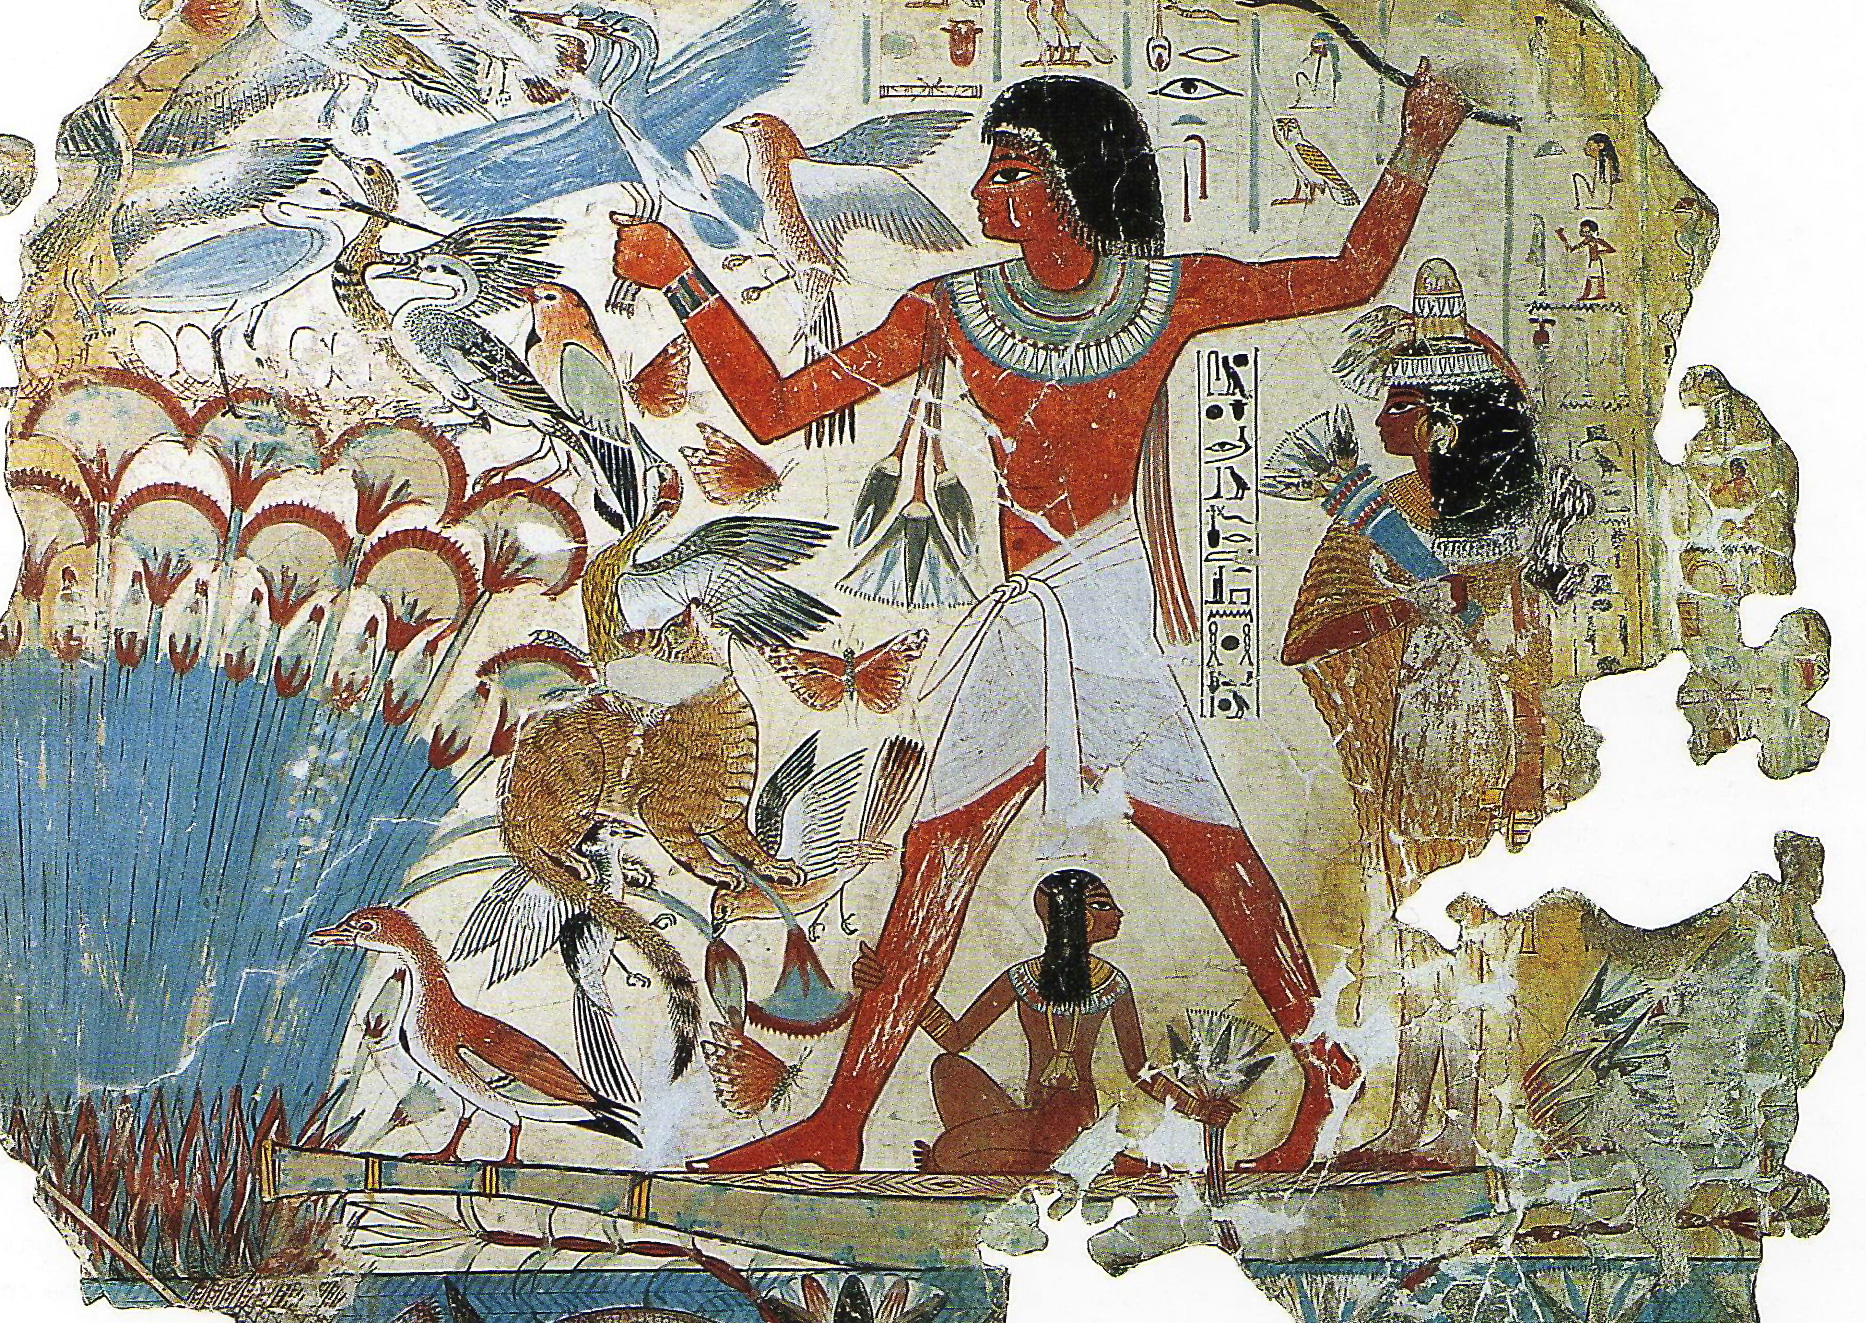 An Egyptian fowling scene showing how the ancient Egyptians used cats for hunting.